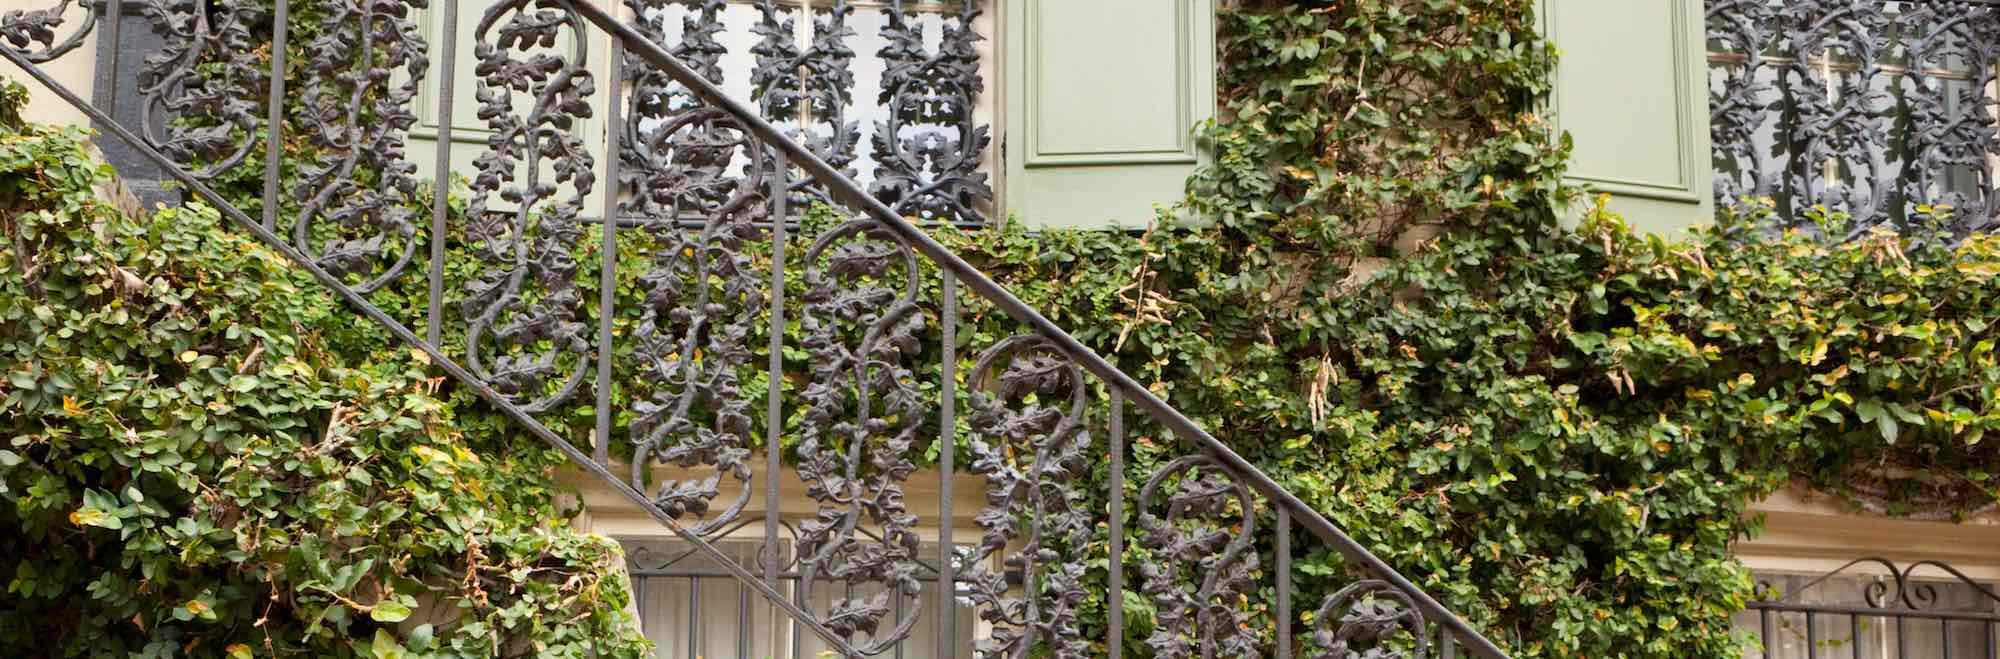 Thick ivy and ornamental ironwork on the facade of a Savannah, GA house.